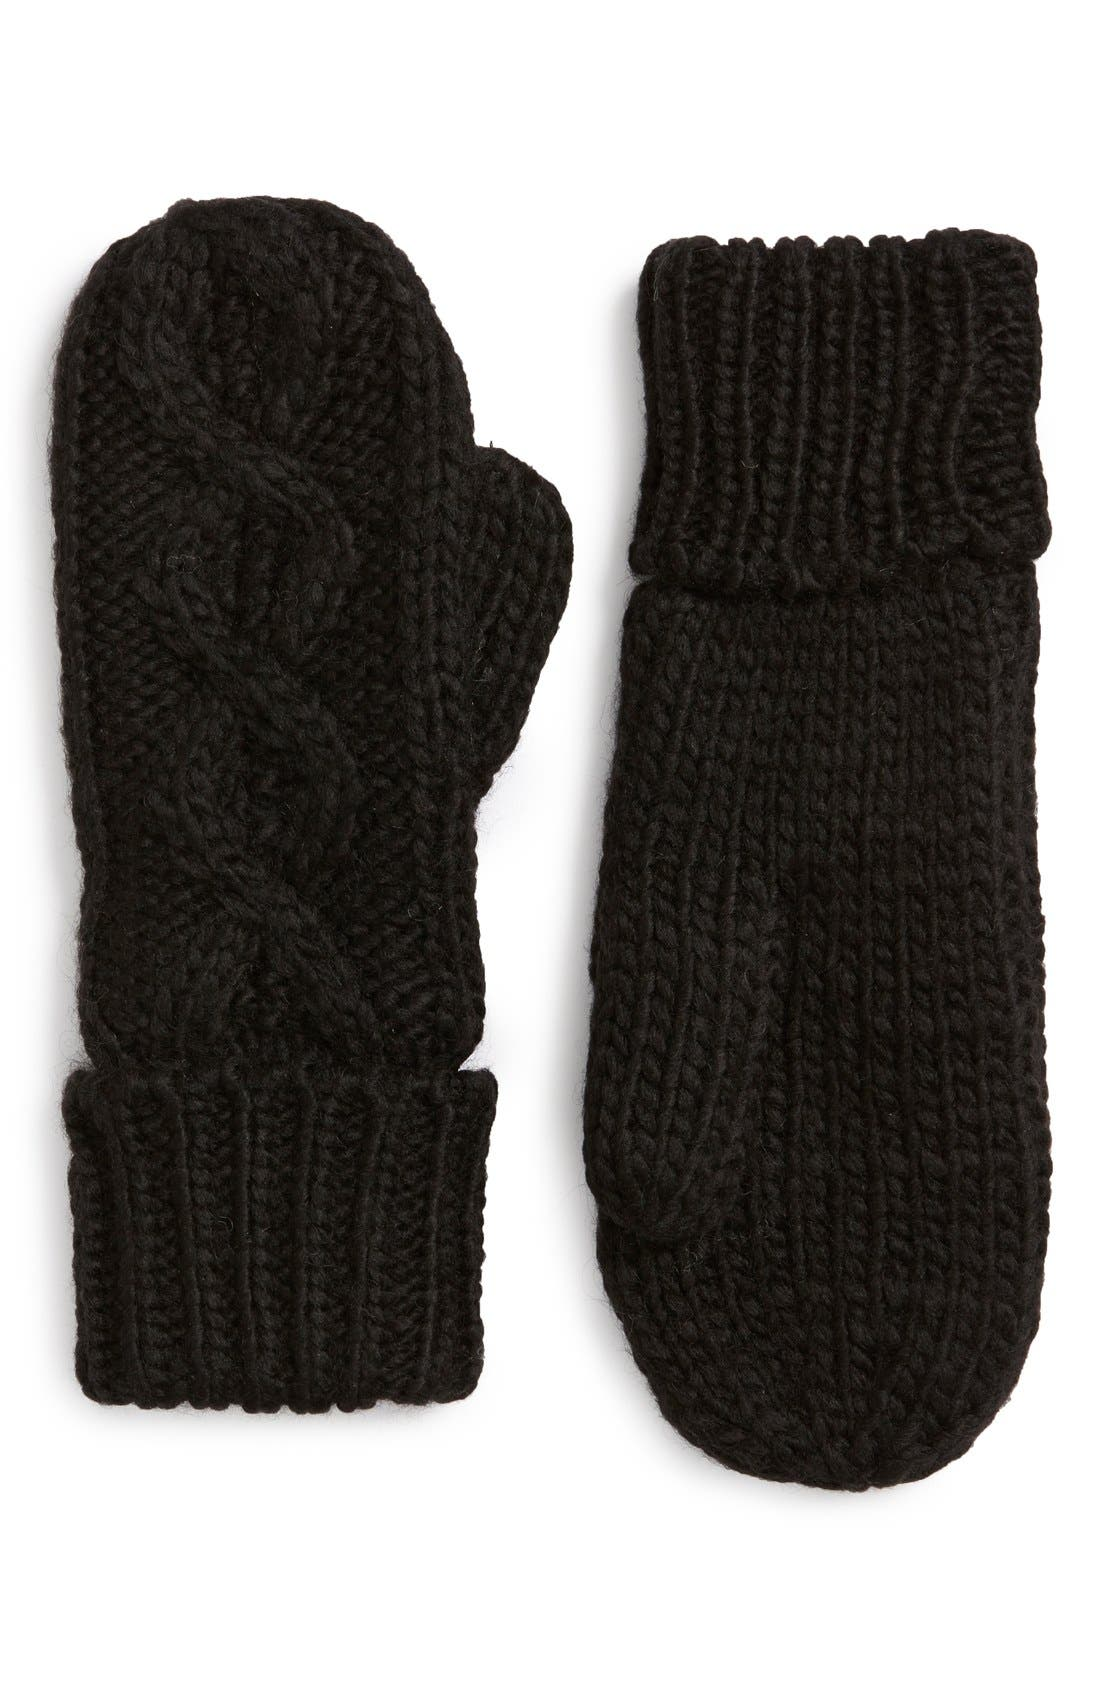 'Betto' Cable Knit Mittens,                             Main thumbnail 1, color,                             Black